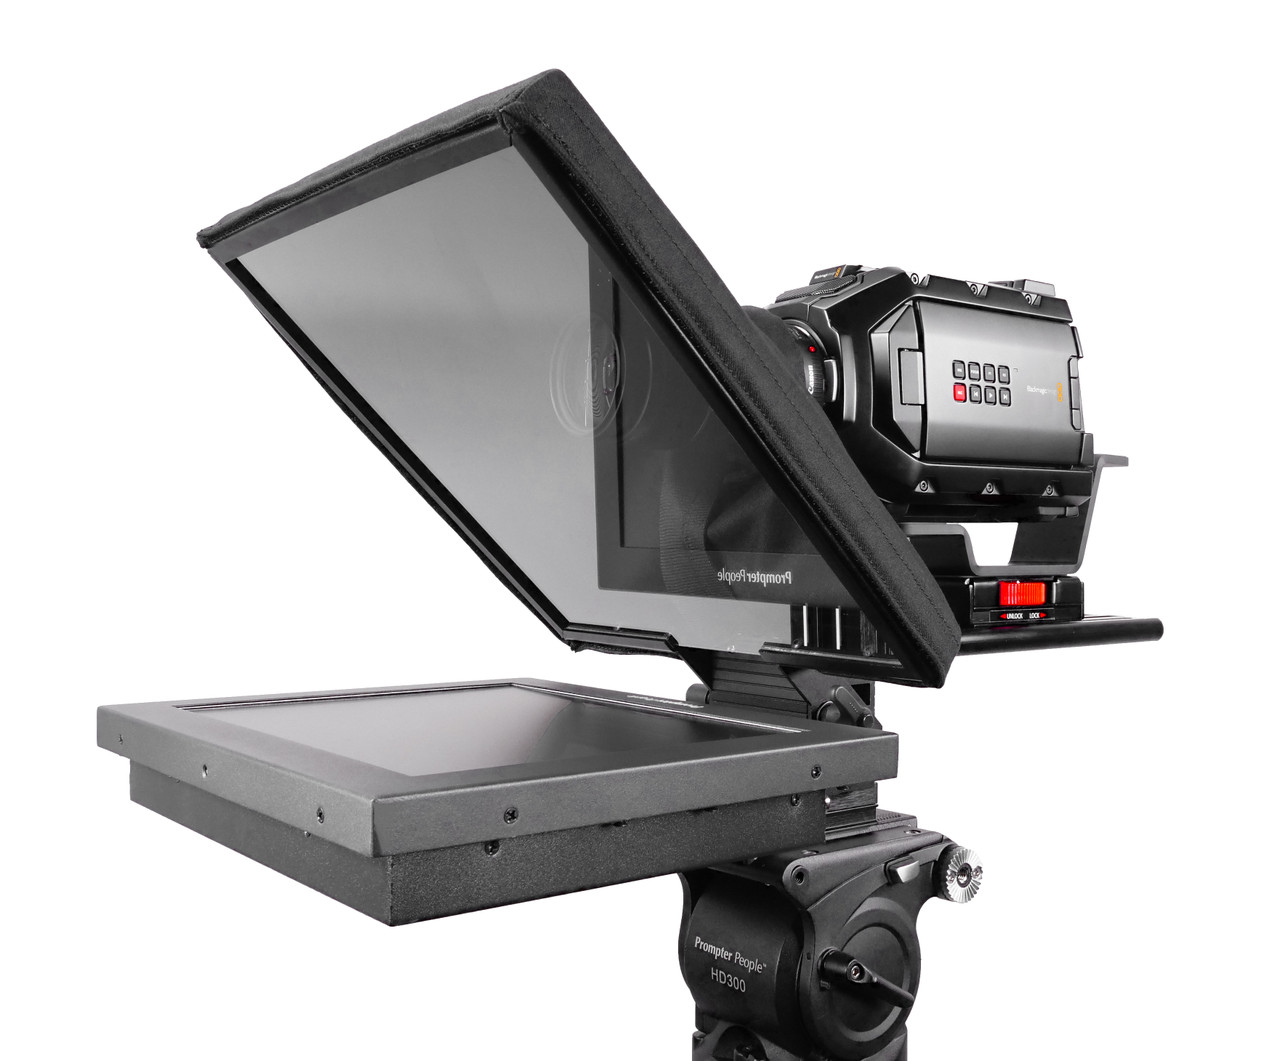 "UltraFlex 12 Inch iPad Pro, HighBright 1000 NIT Monitor, and Free Teleprompter Software - Pictured with HighBright 12"" Monitor - Angled"